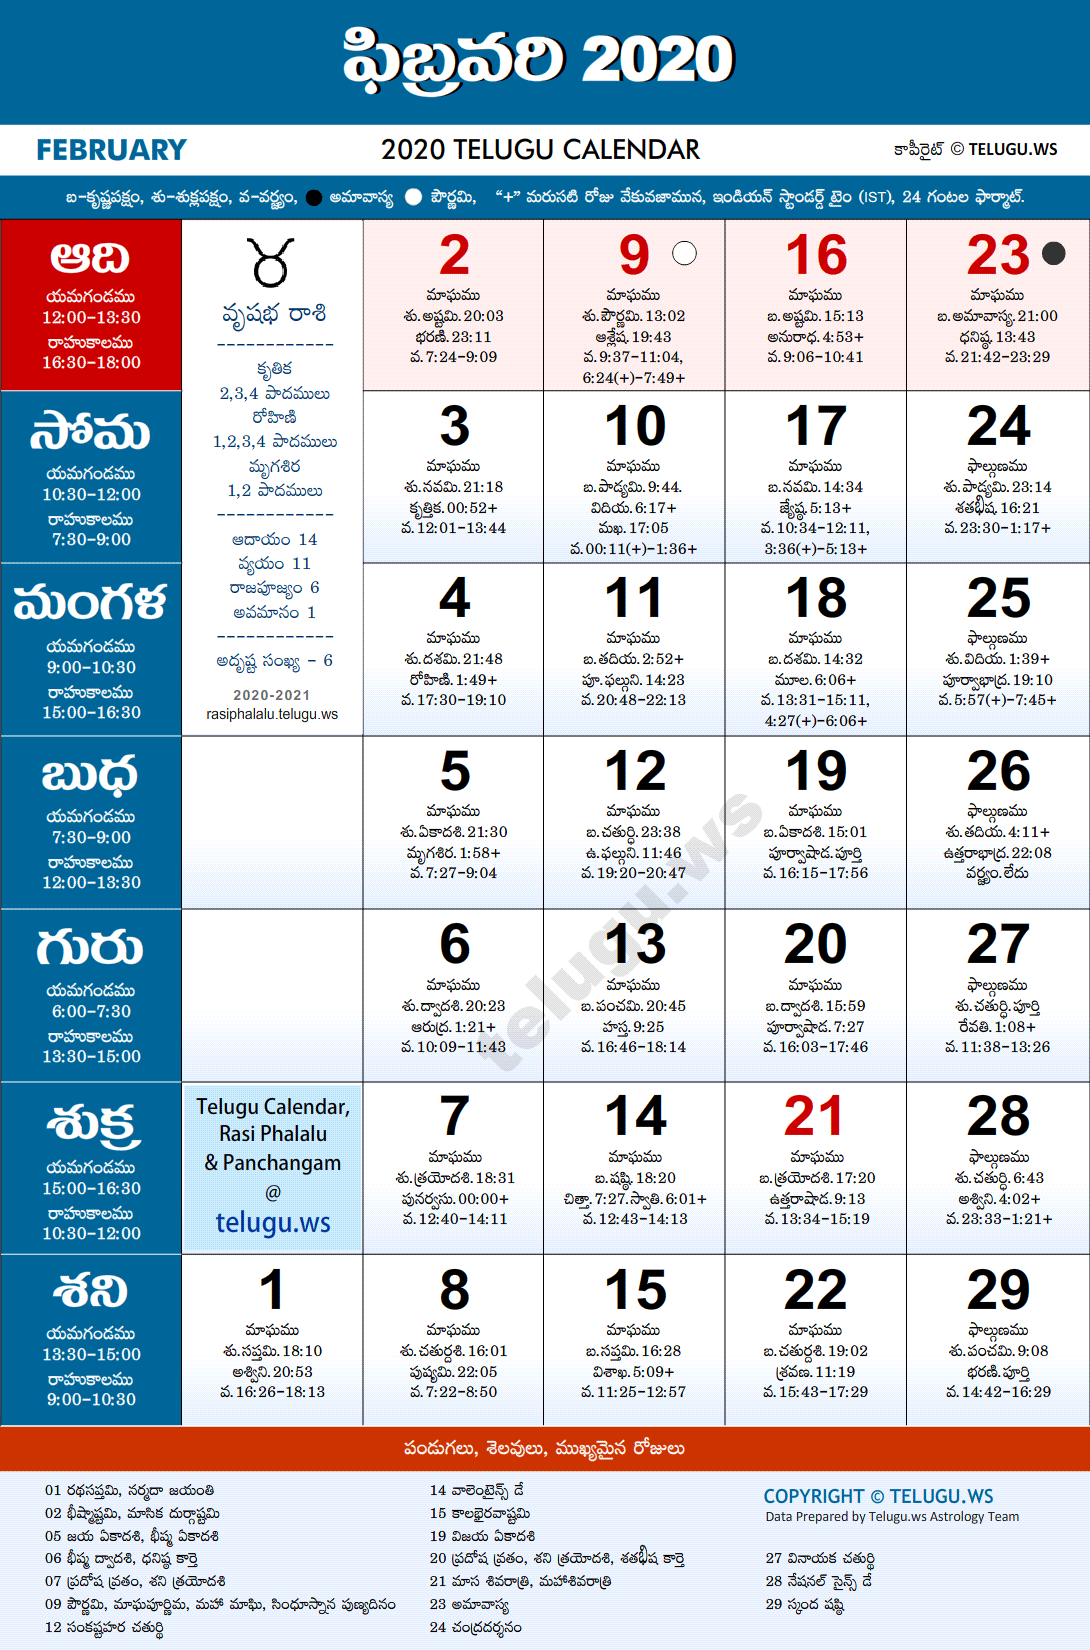 Telugu Calendar 2020 February Festivals and Holidays